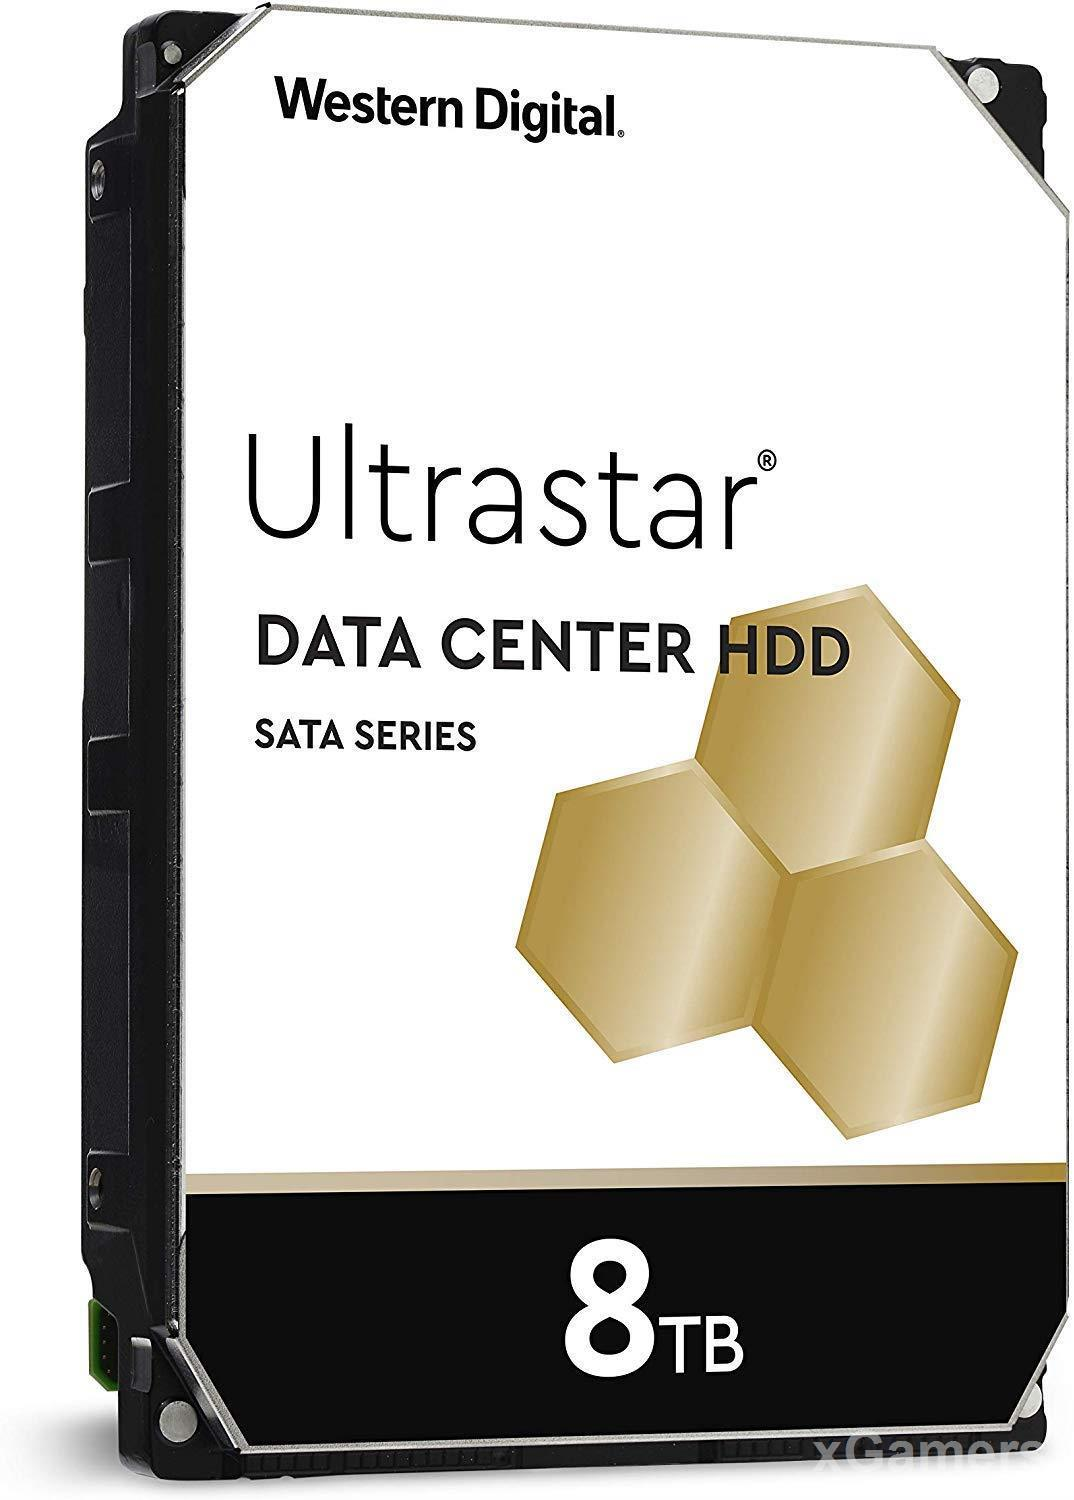 Western Digital HGST WD Ultrastar - Best HDD for Gaming